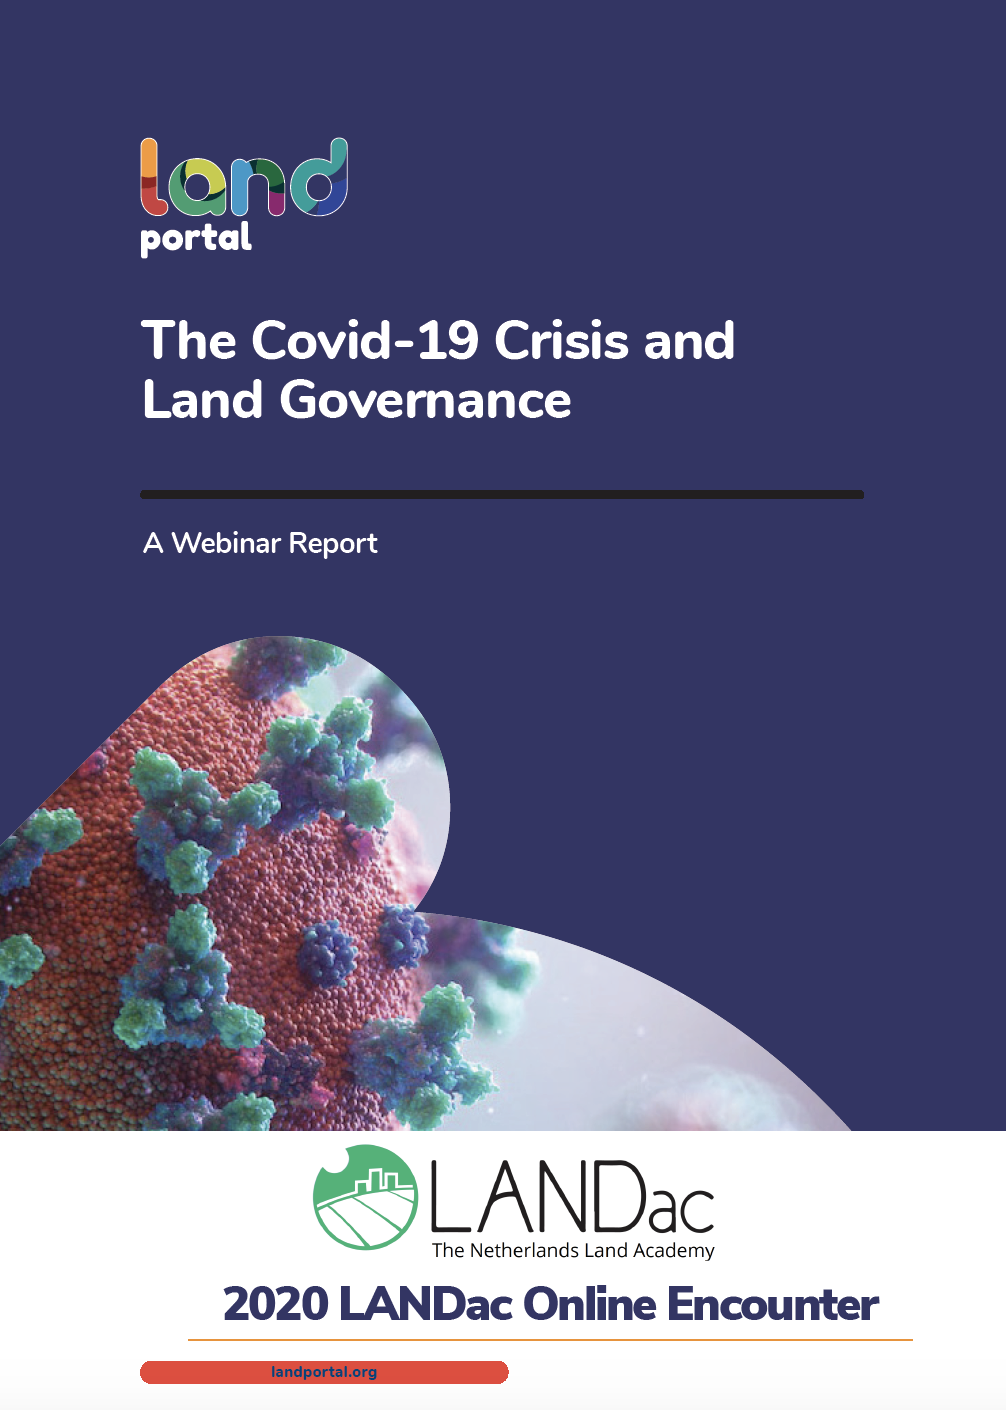 The Covid-19 Crisis and Land Governance